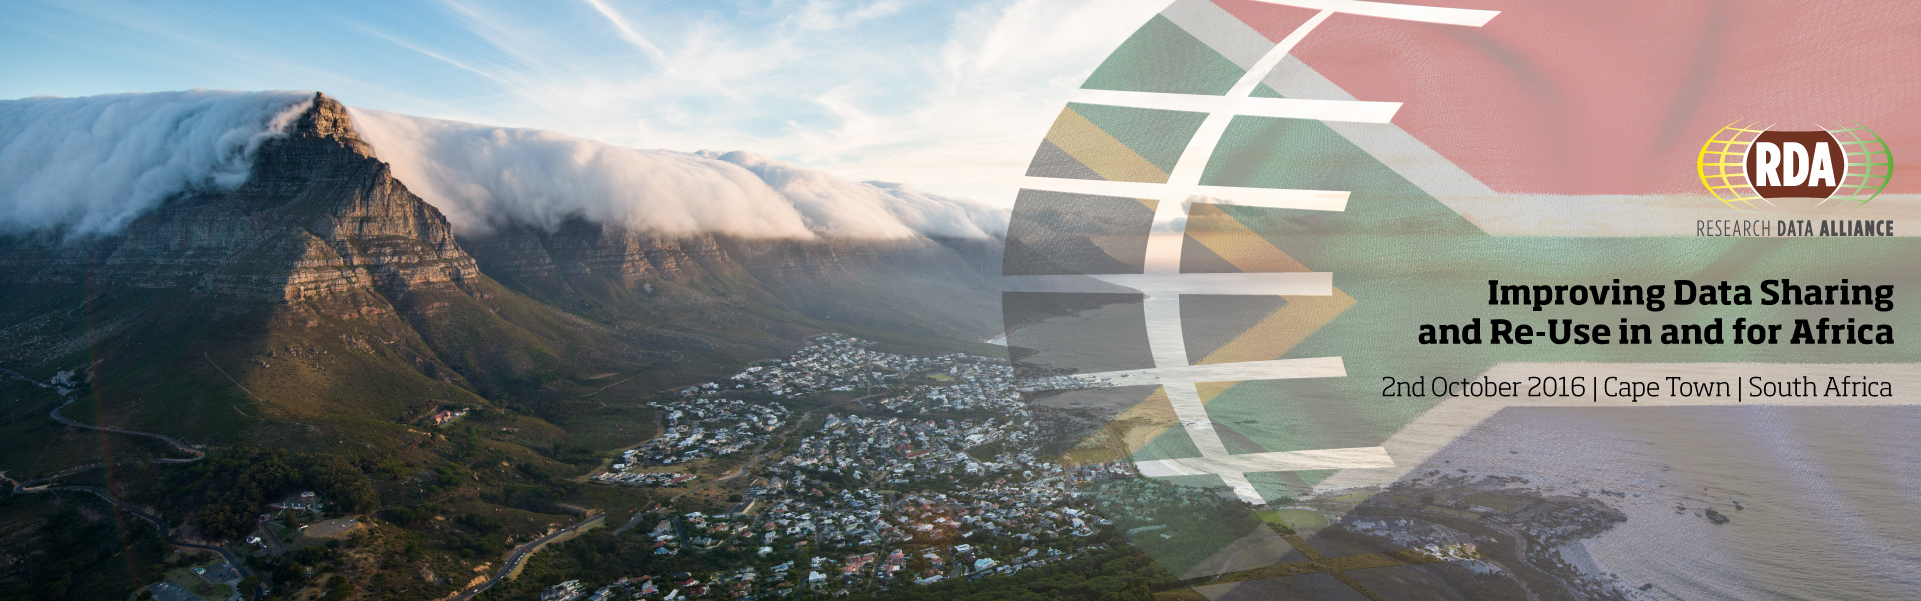 Improving Data Sharing and Re-Use in and for Africa, 2 October 2016, Cape Town, South Africa